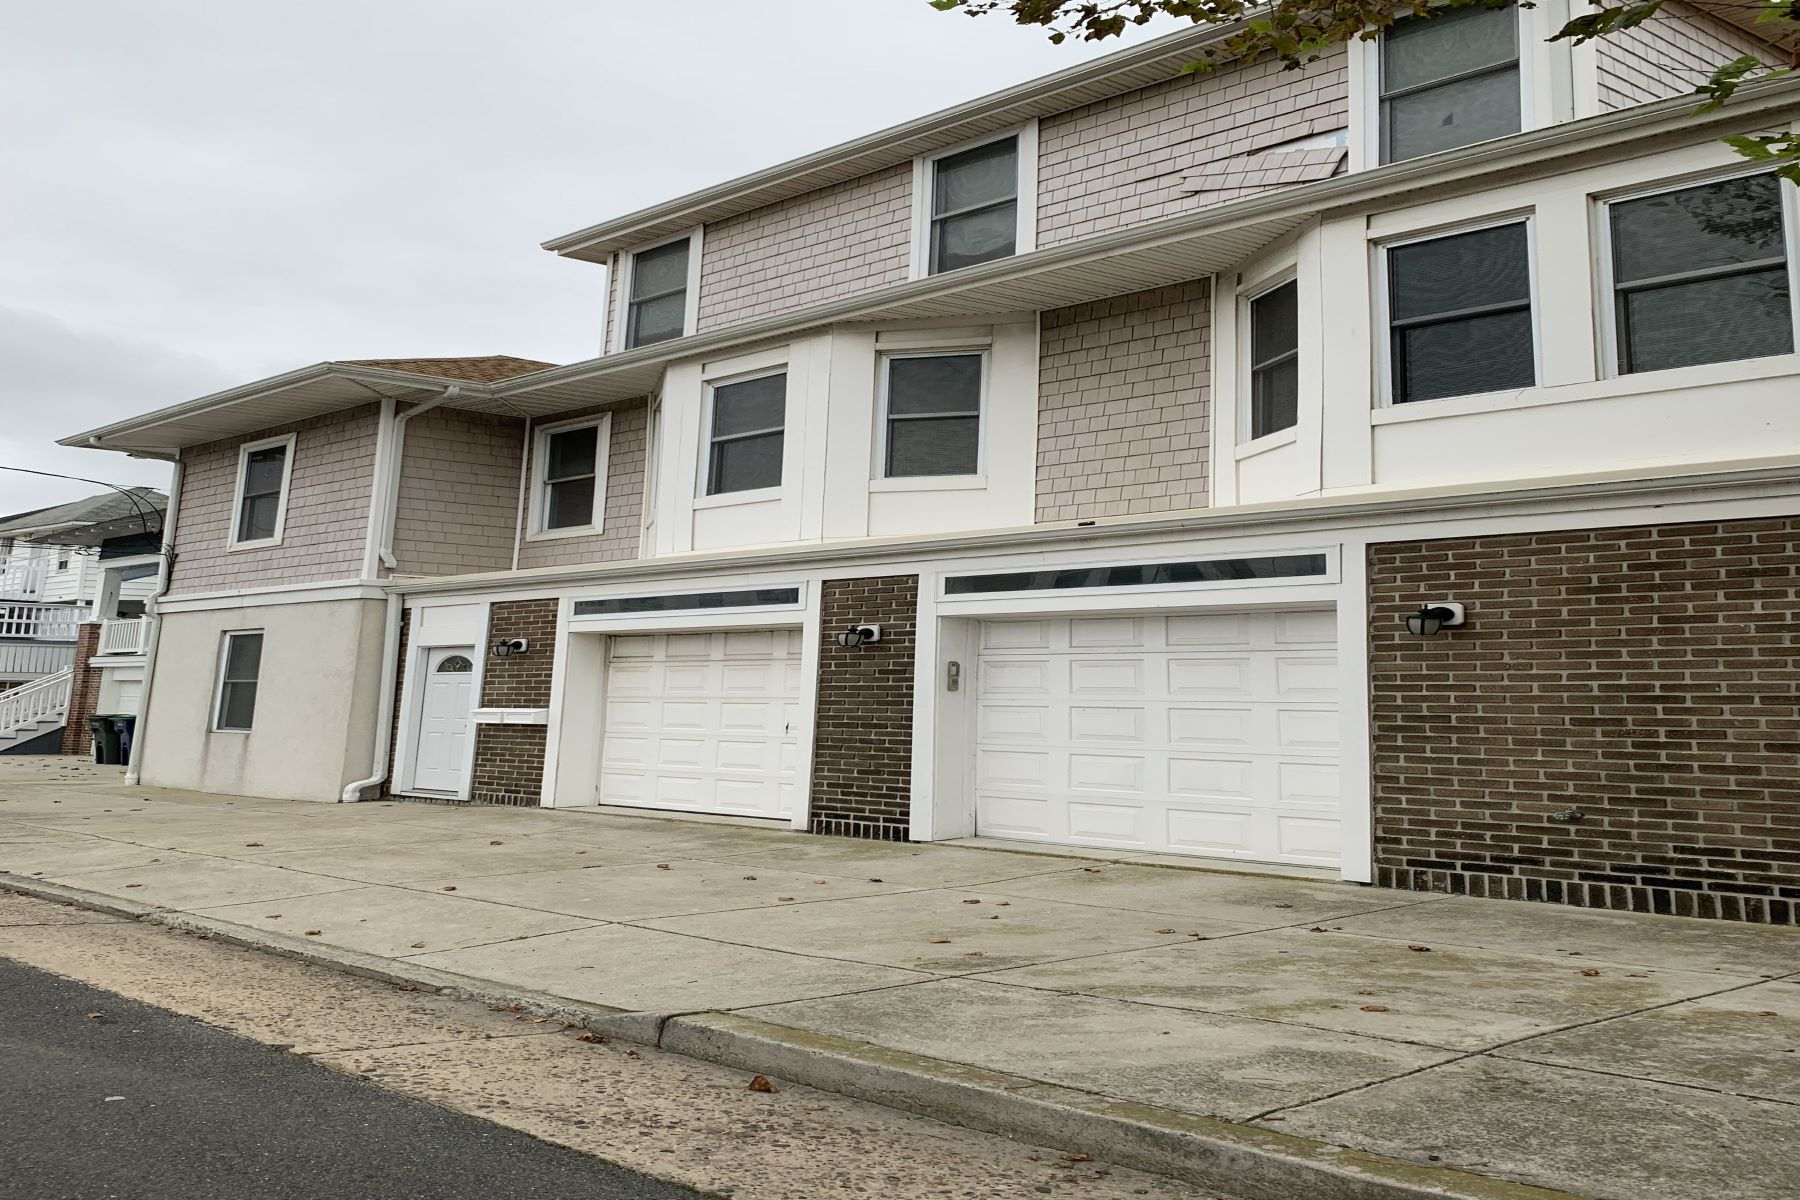 Multi-Family Homes for Sale at 5123 Ventnor Ave, Unit A Ventnor, New Jersey 08406 United States